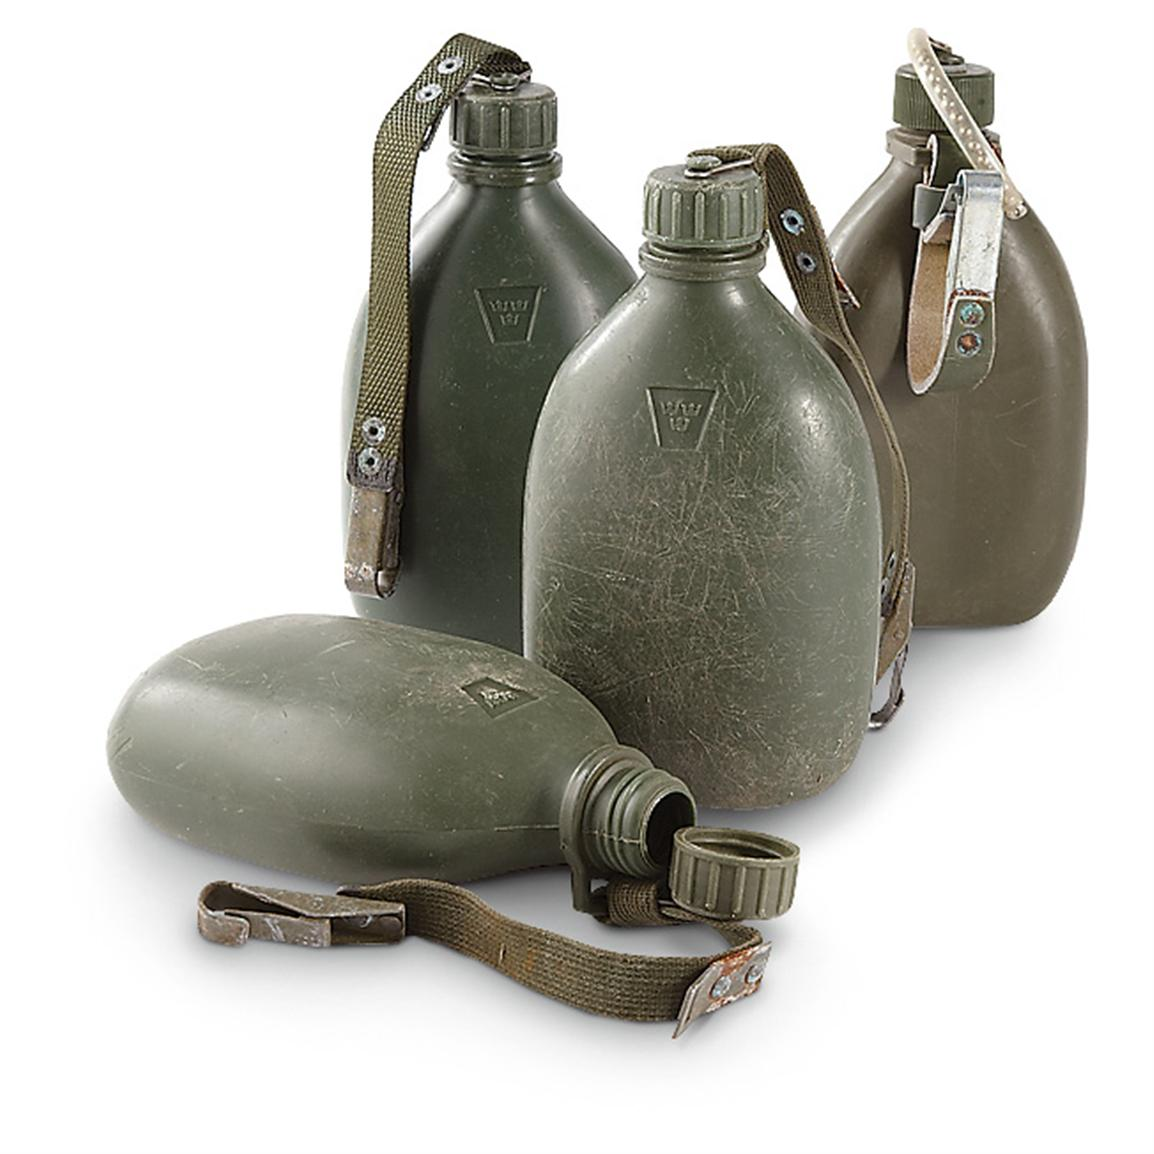 4 Used Swedish Military Molded Canteens, Olive Drab